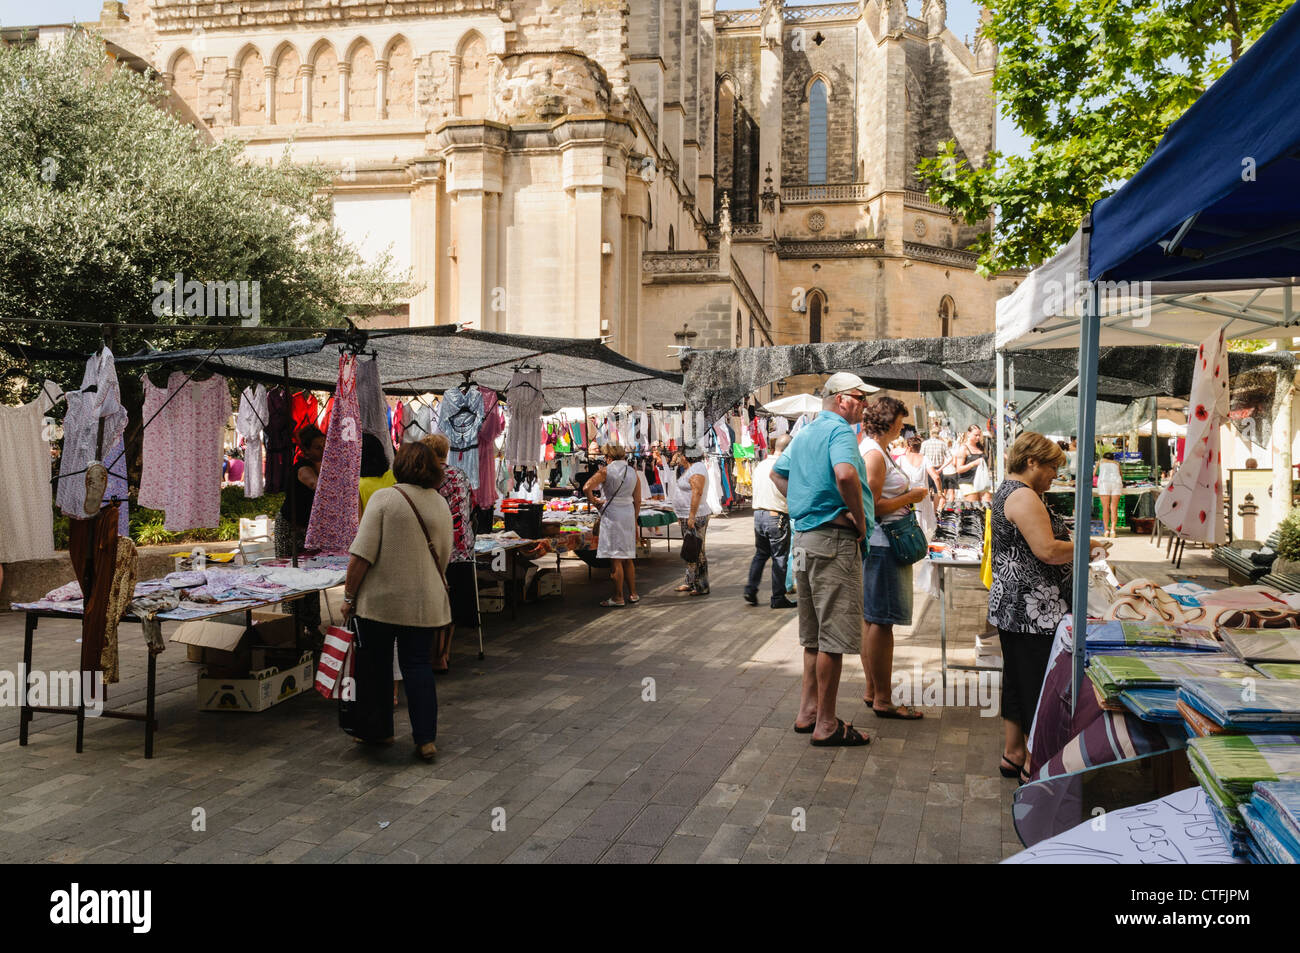 Manacor Shopping Center Market Stalls Around The Cathedral In Manacor, Mallorca